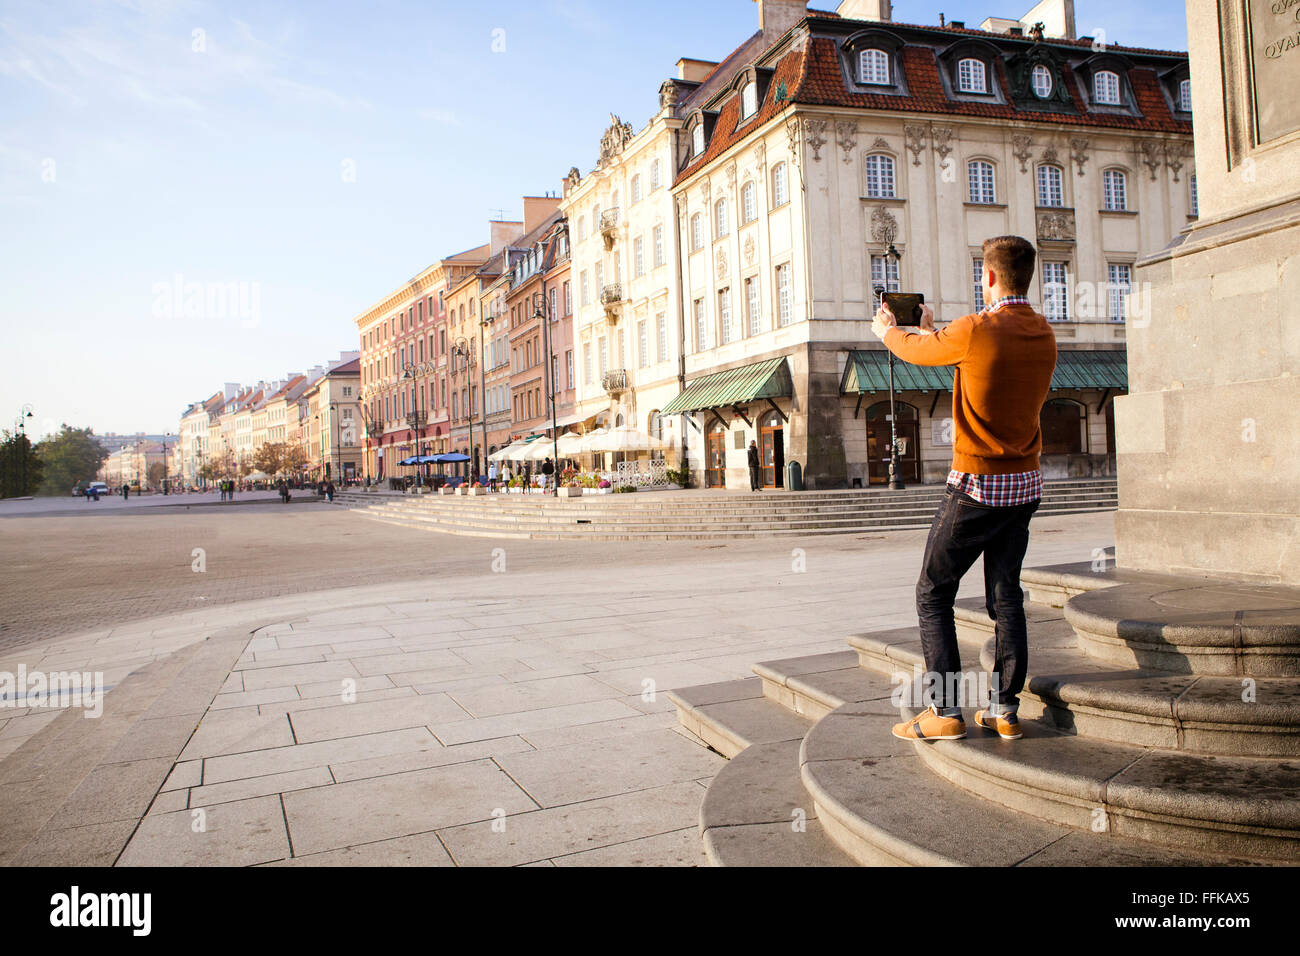 Mid adult man on a city break taking a picture - Stock Image